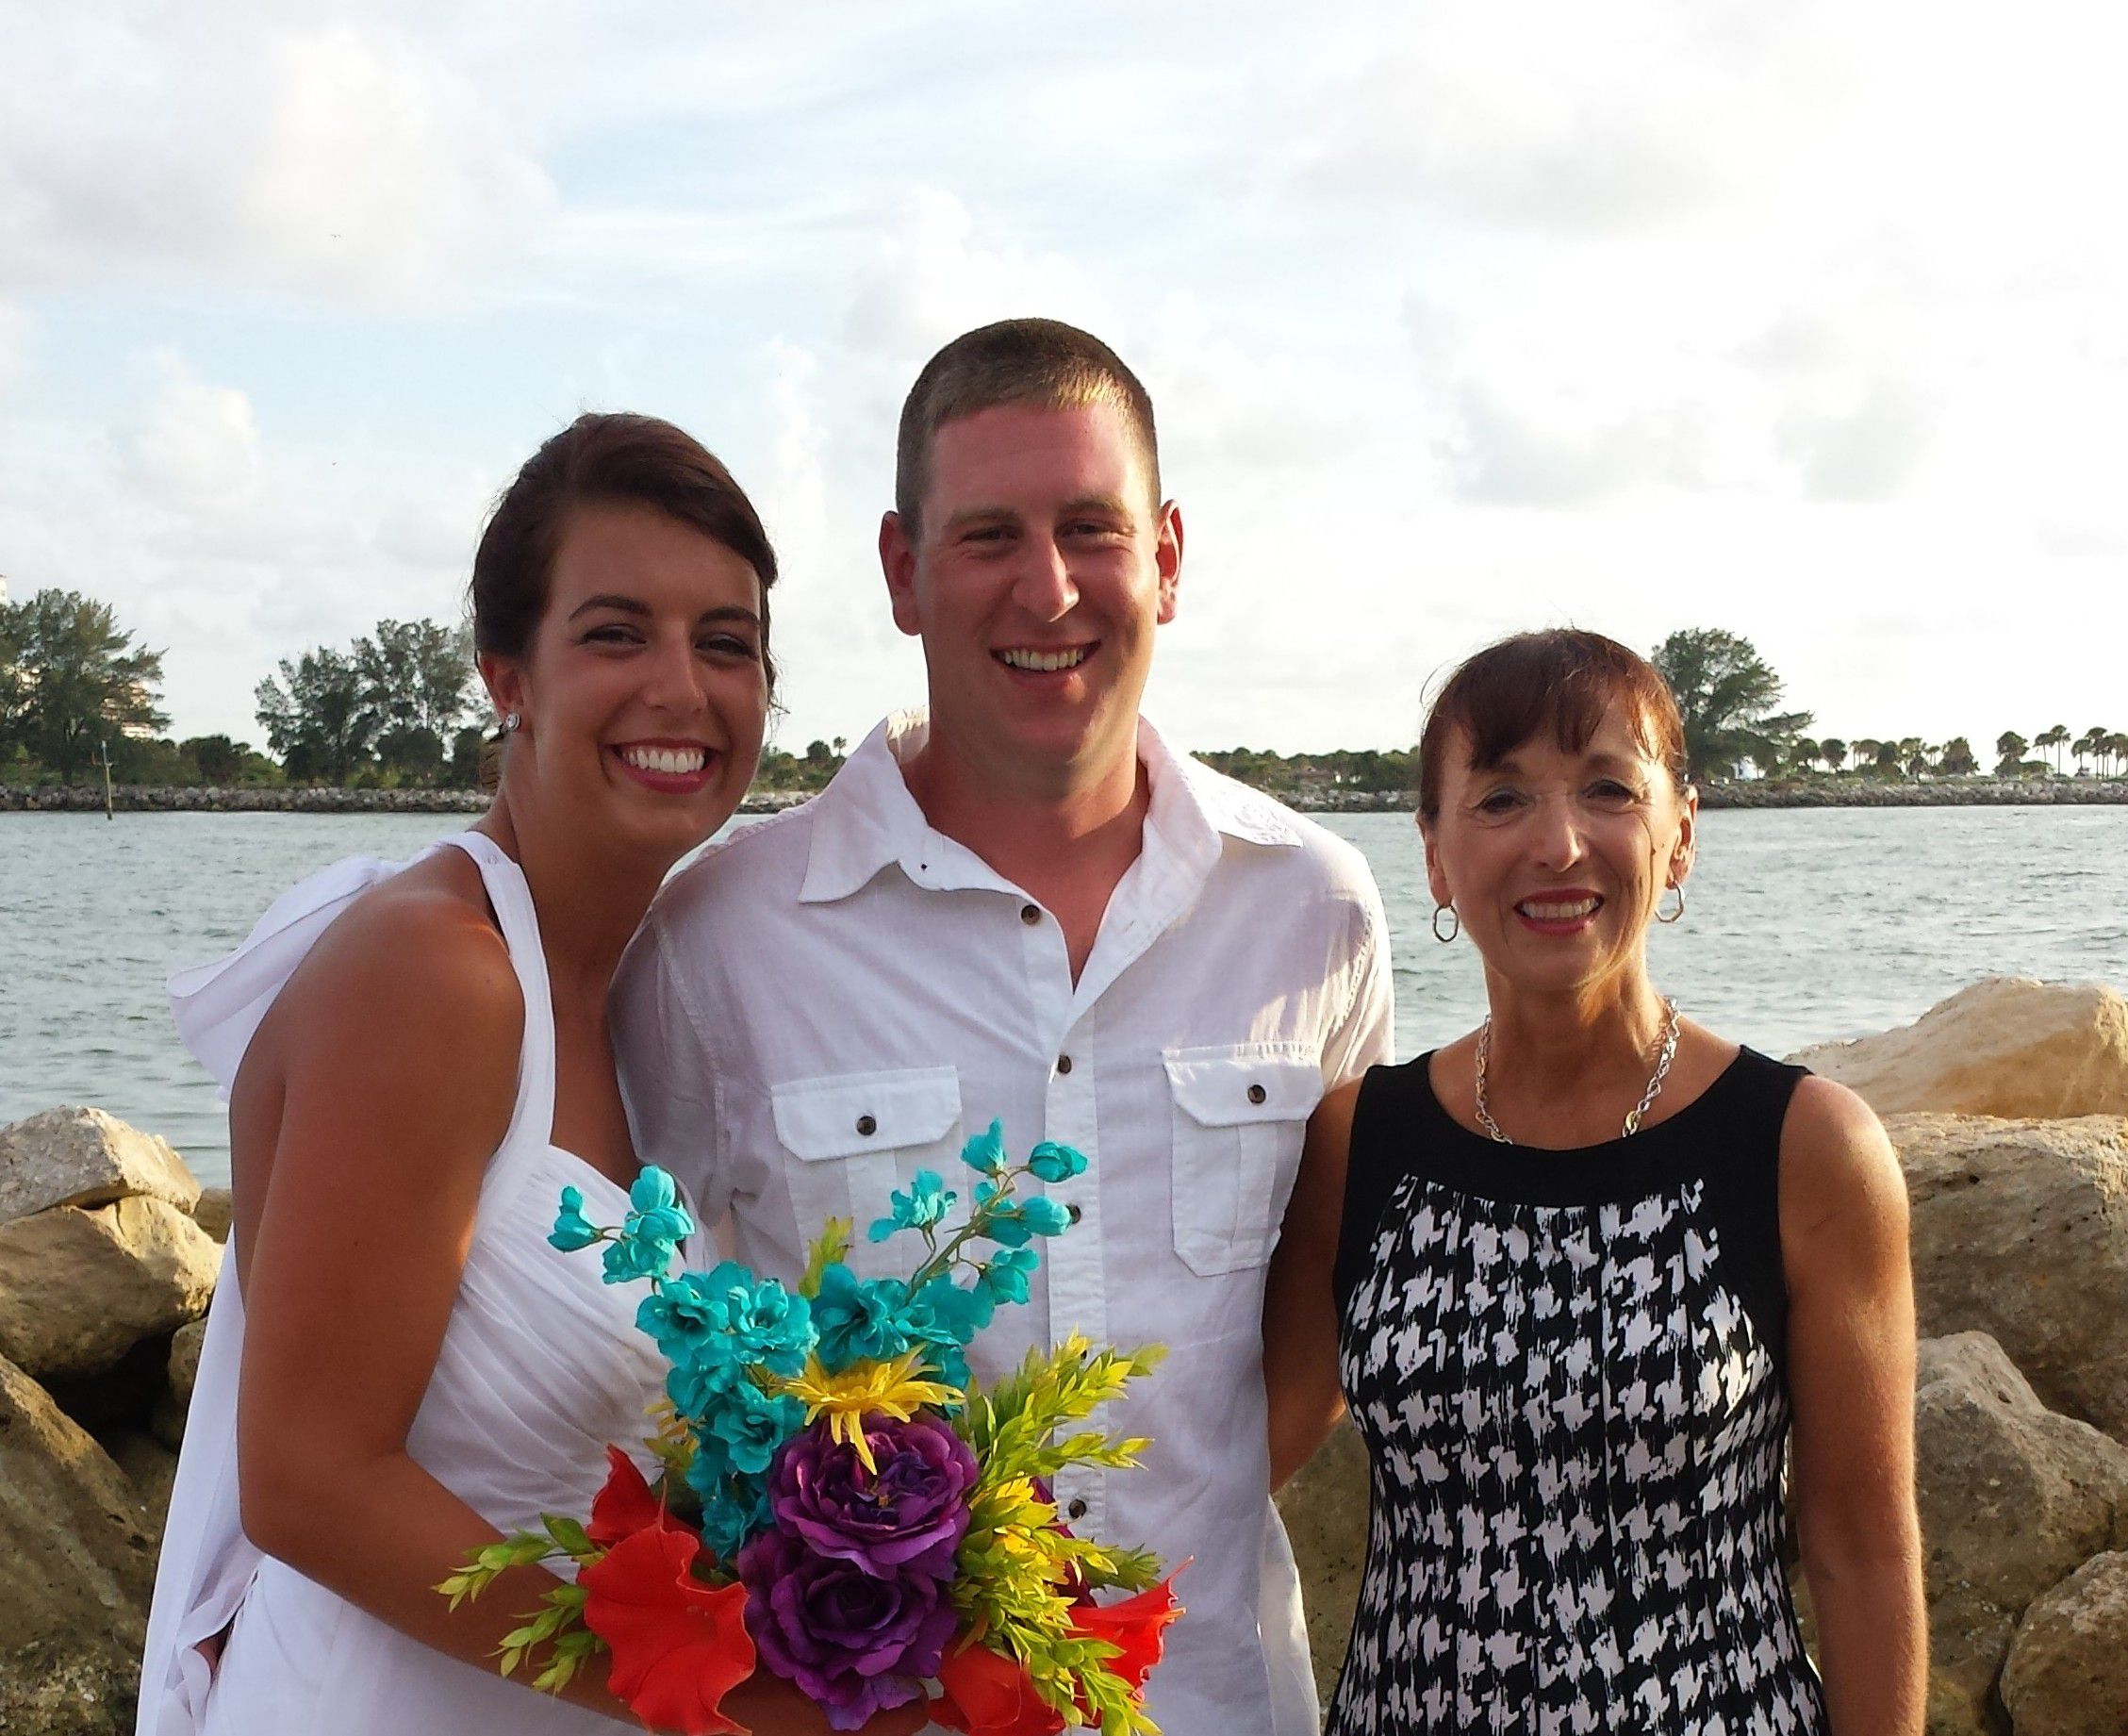 Clearwater beach wedding officiate Archives   A Beautiful Wedding ...